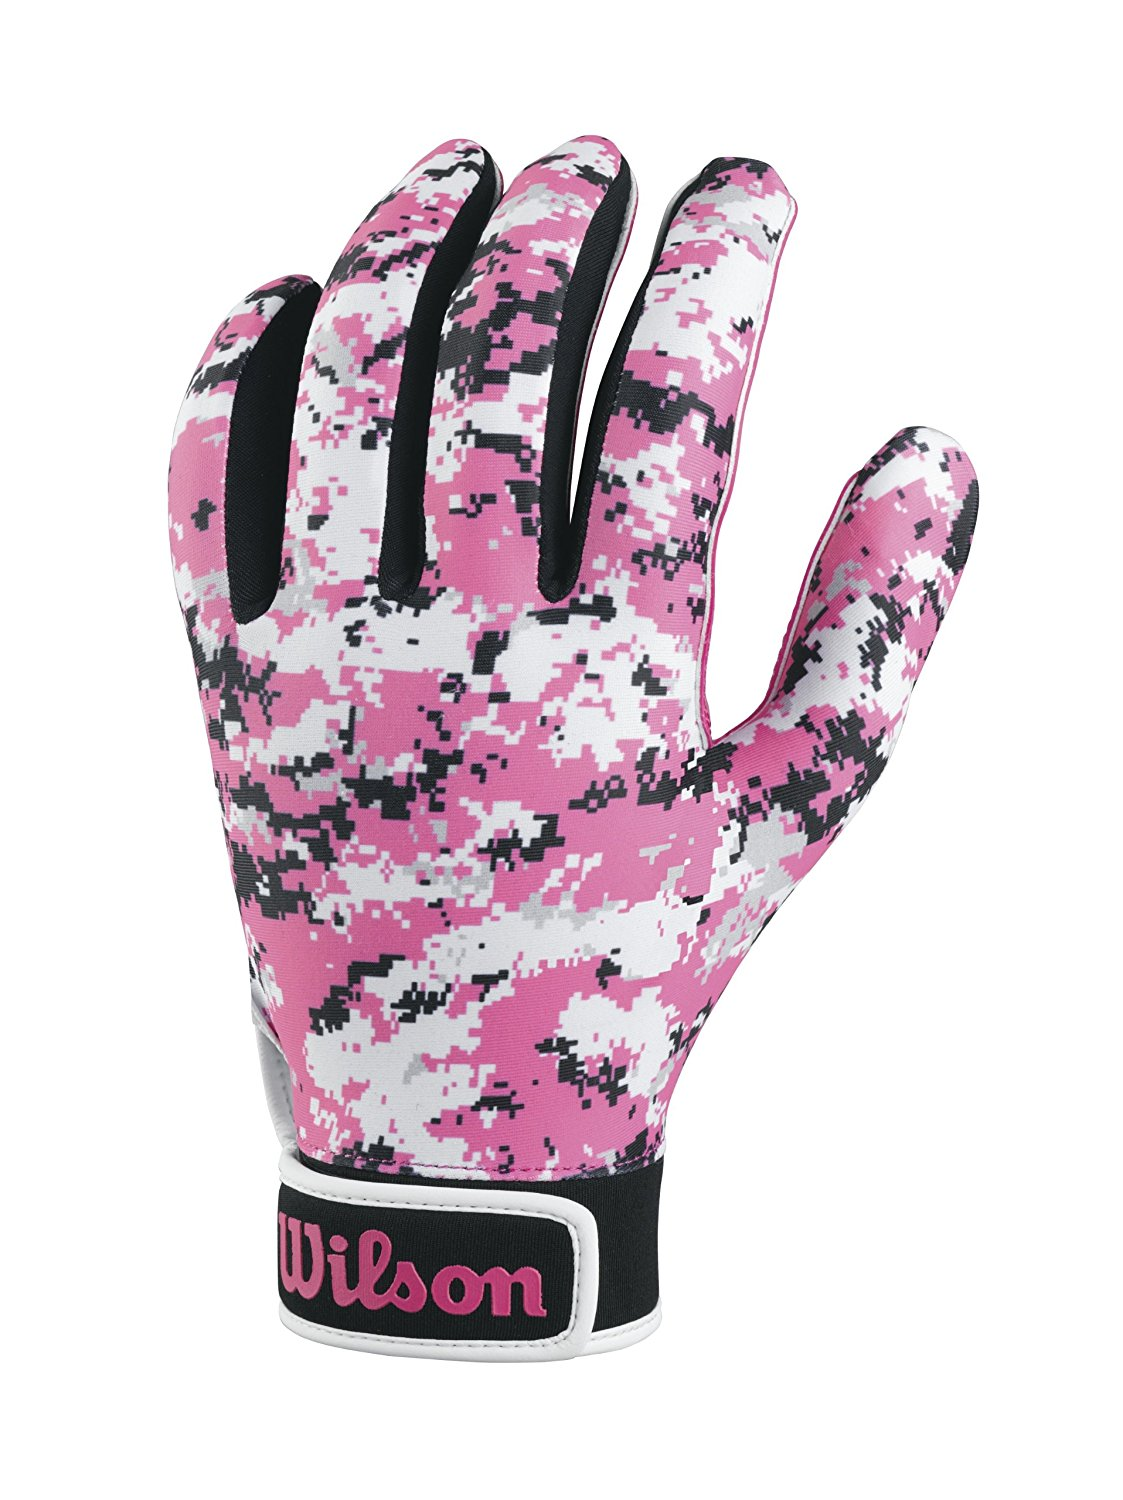 Wilson football receiver gloves Special Forces digi camo Pink Adult Youth sizes